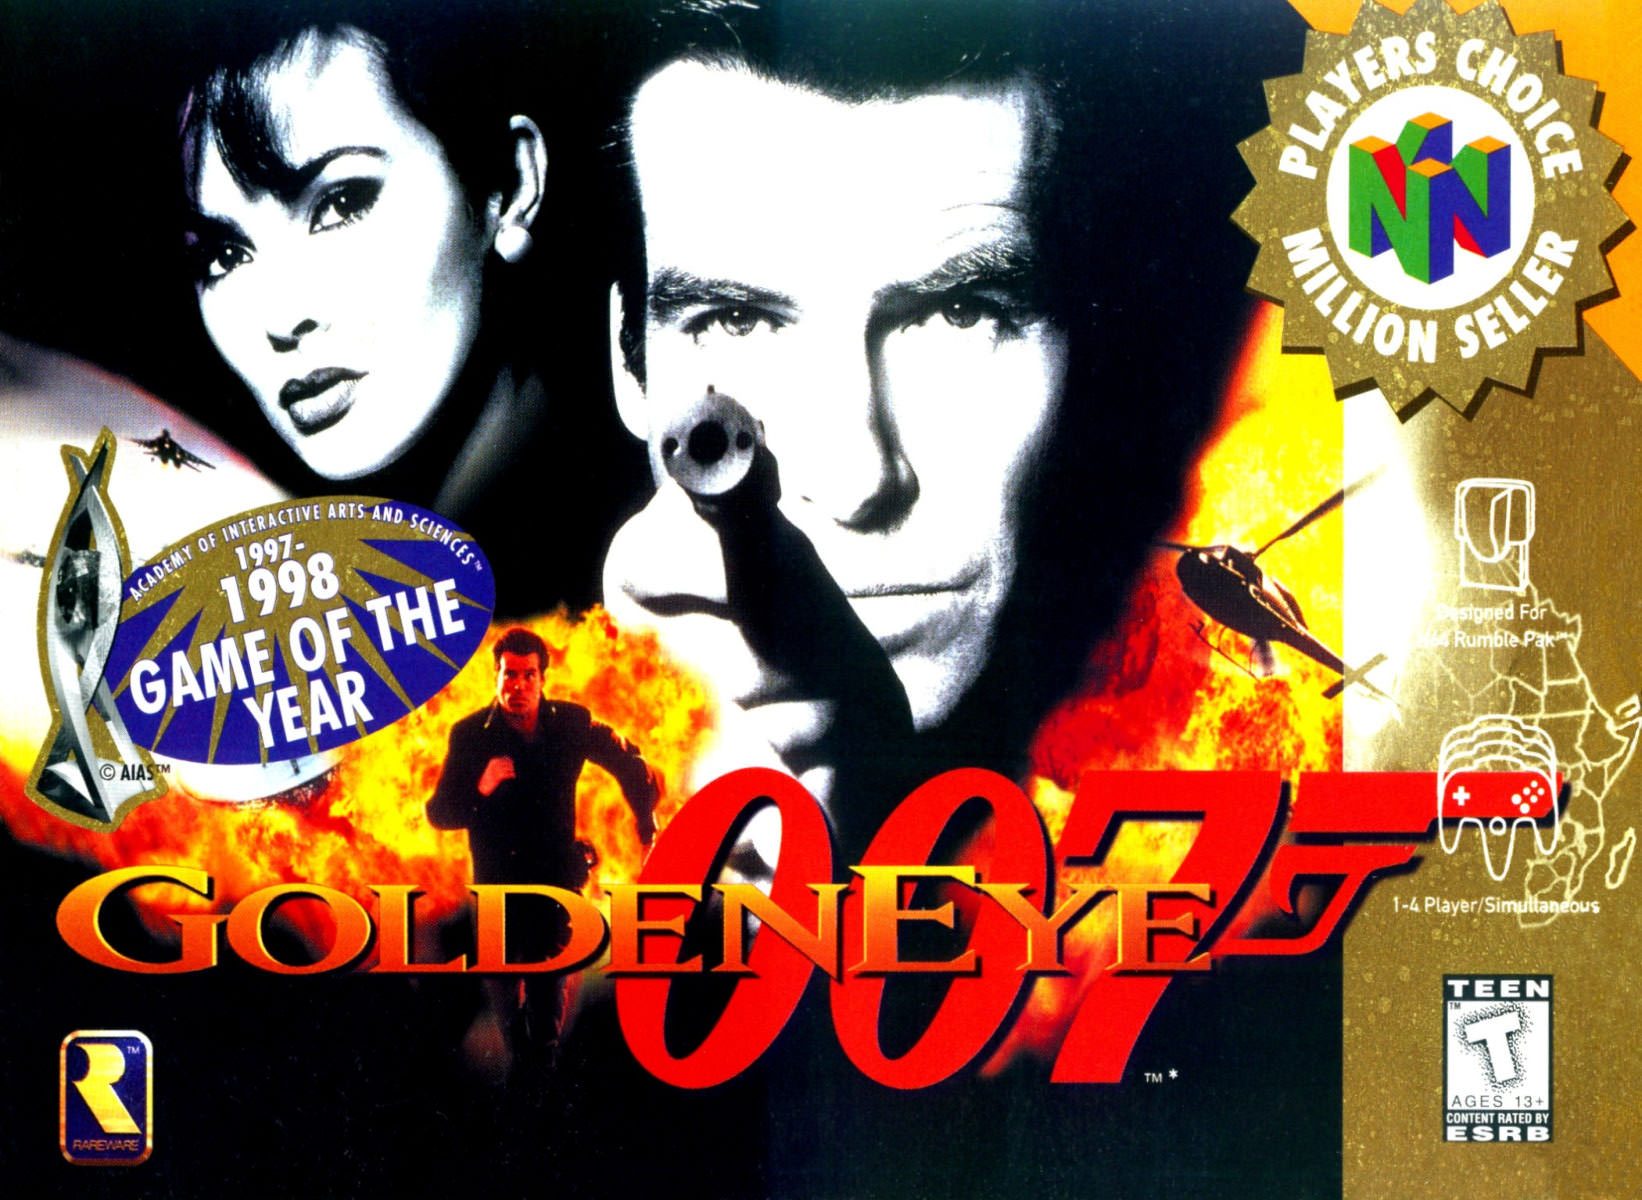 Footage released of cancelled Goldeneye Remaster.